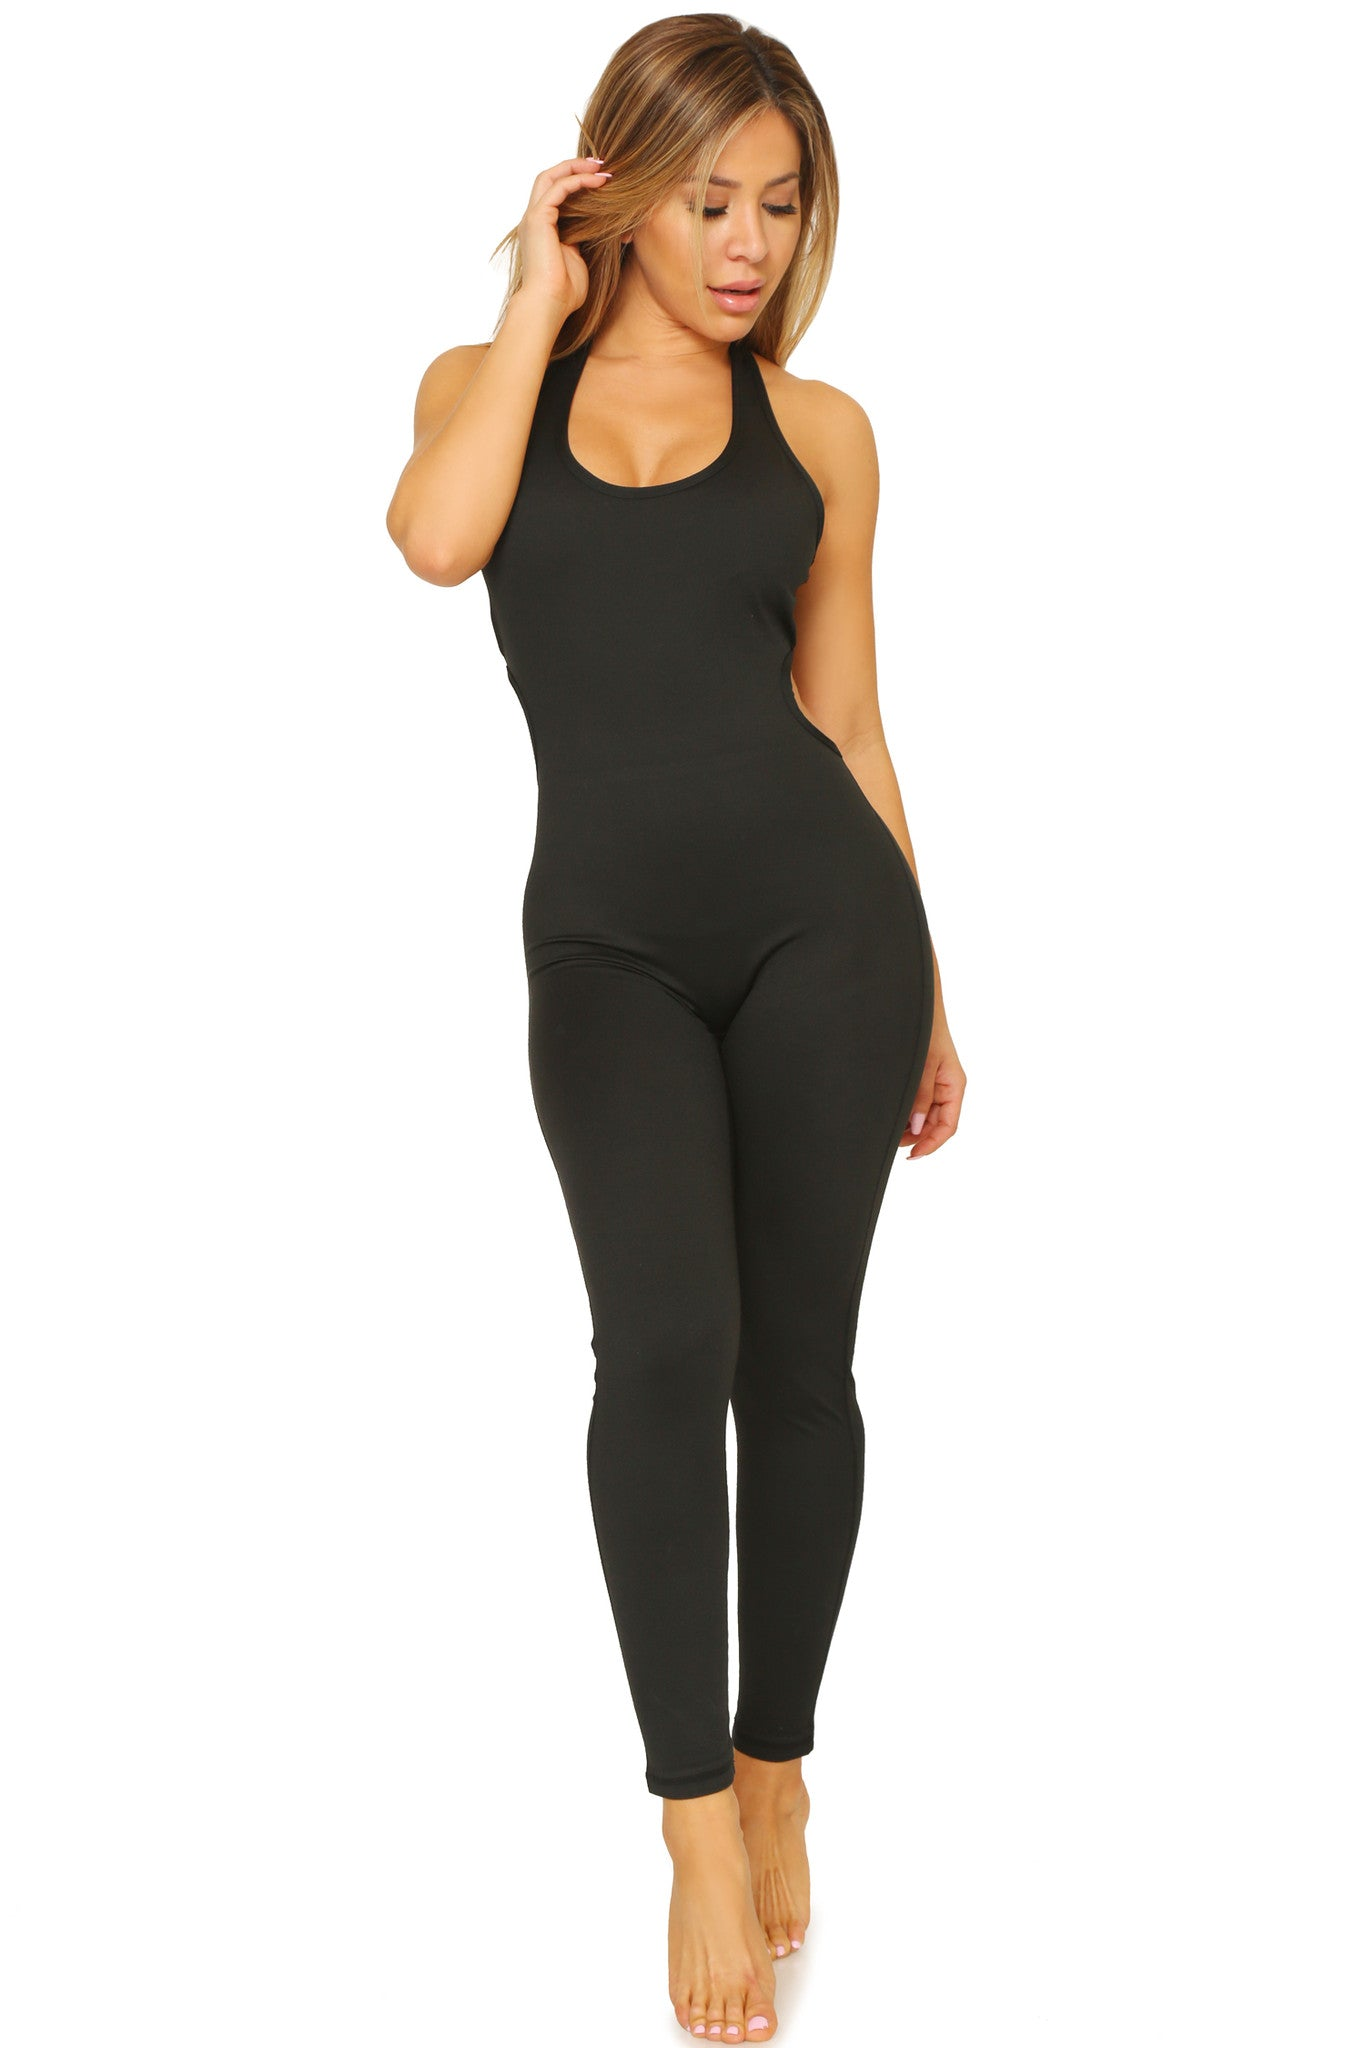 MICHELLE YOGA UNITARD